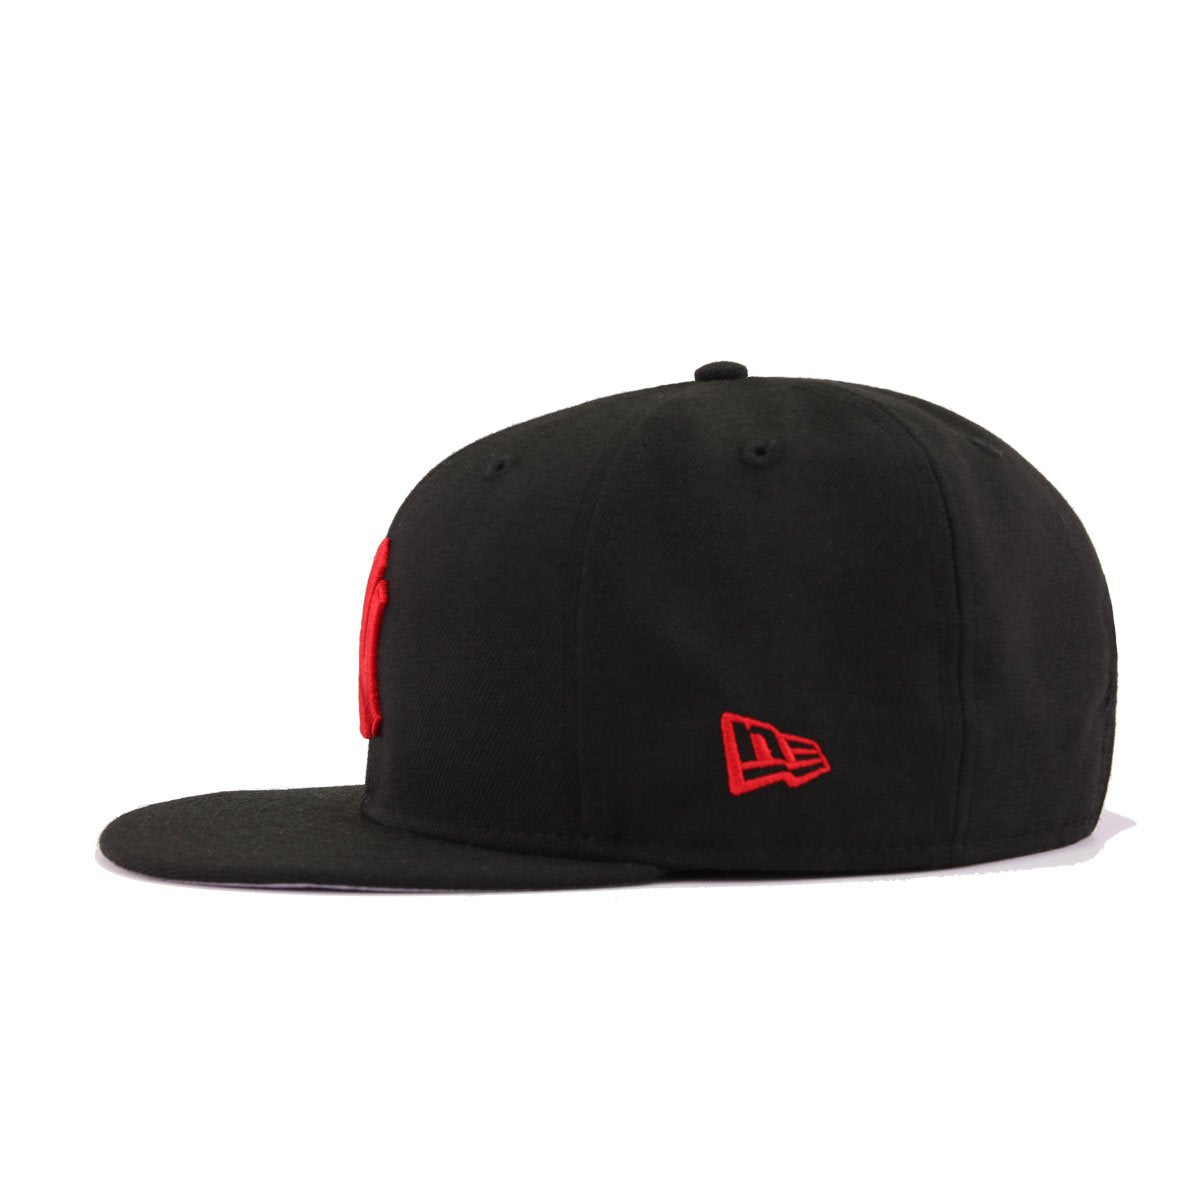 New York Yankees Black Scarlet 27 Championships New Era 9Fifty Snapback